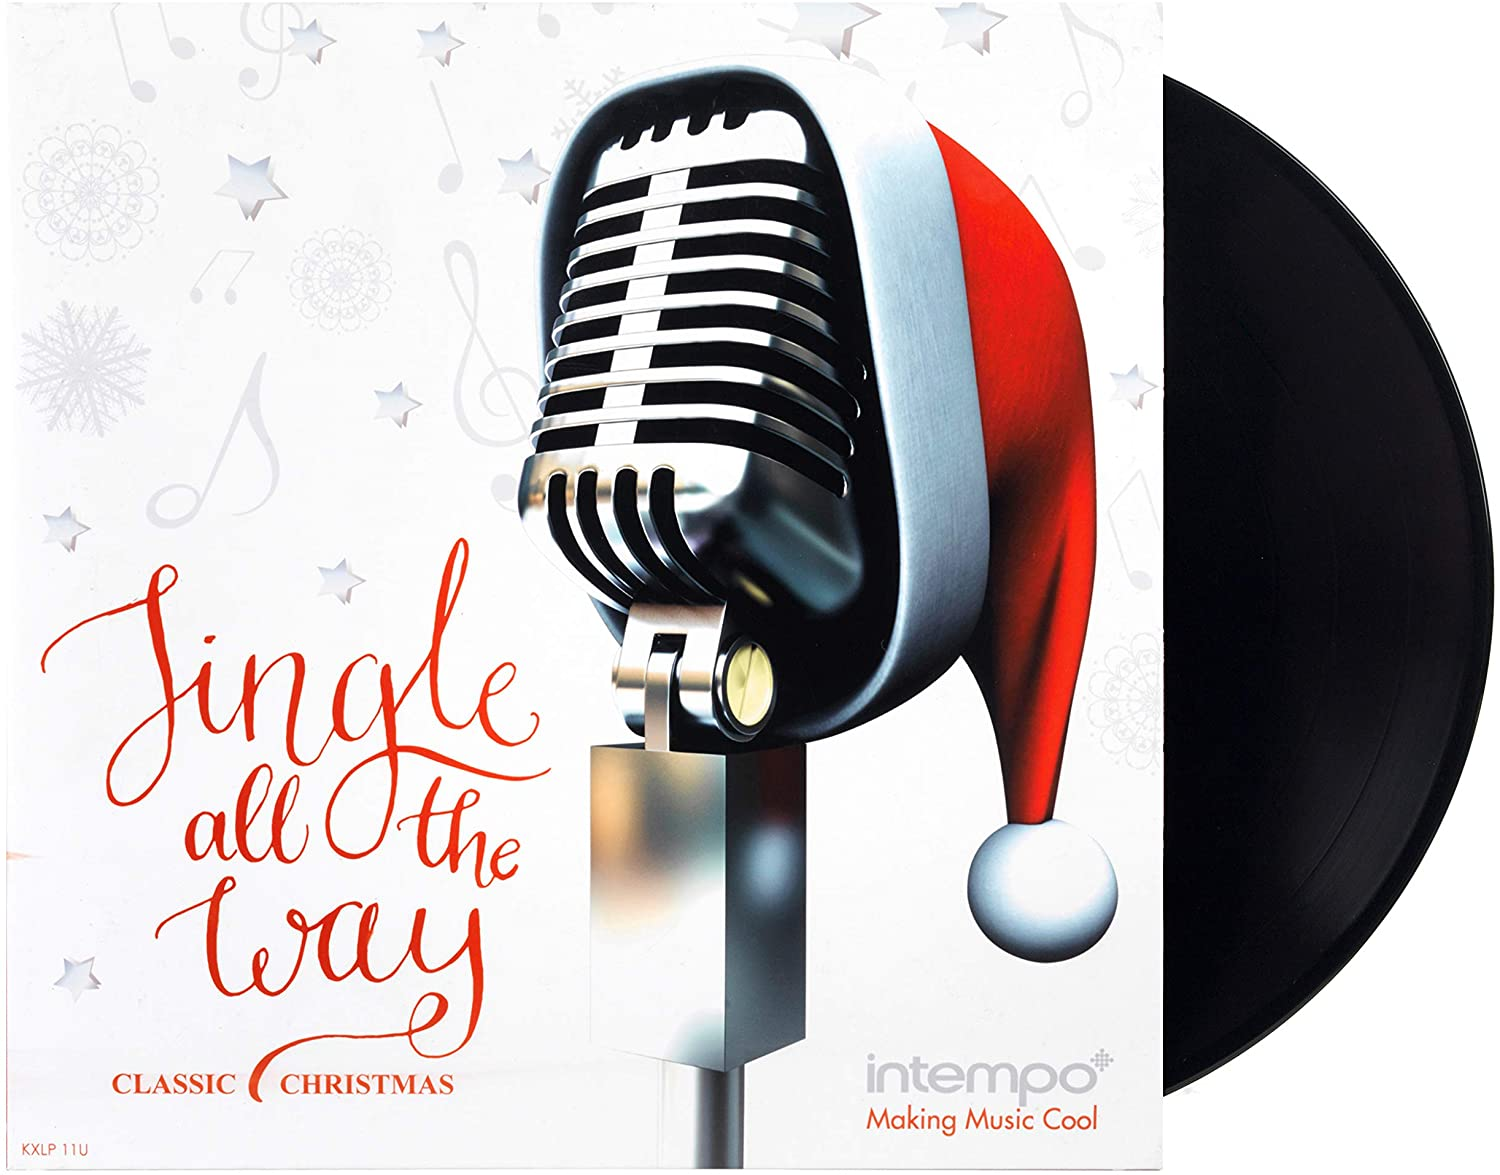 Jingle all the way classic christmas lp